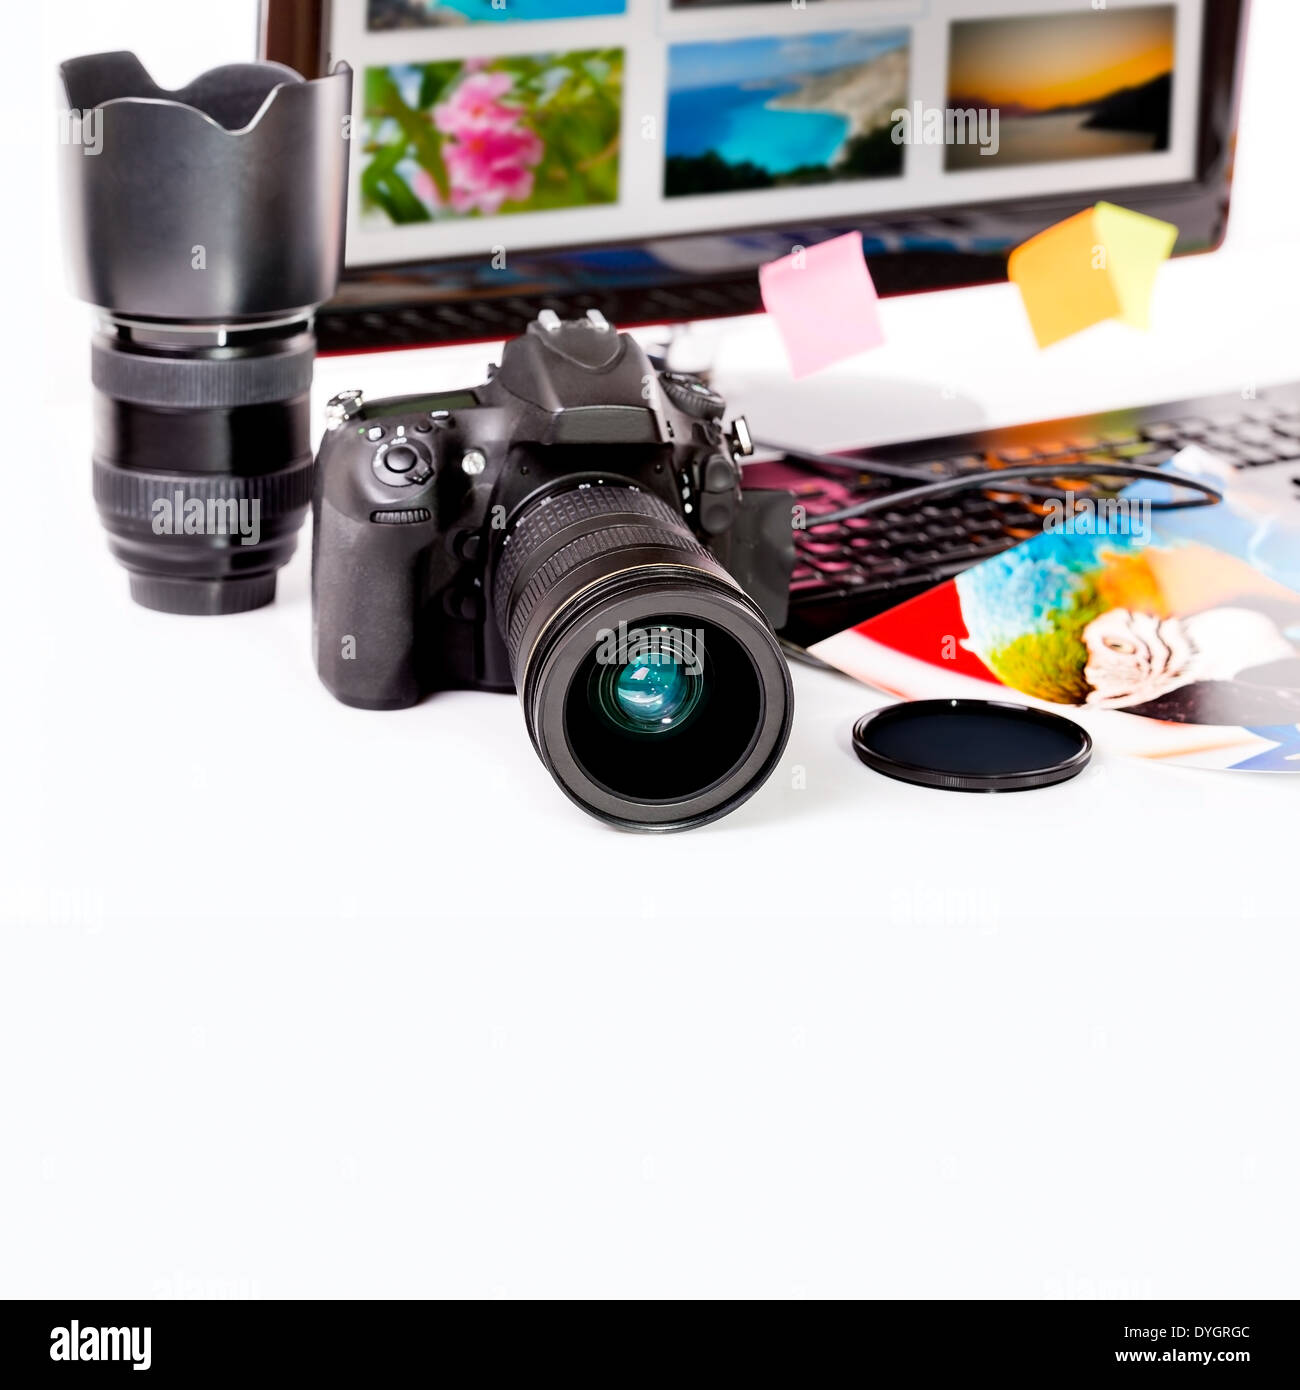 Photography concept. Digital camera, monitor and photos on white background. - Stock Image